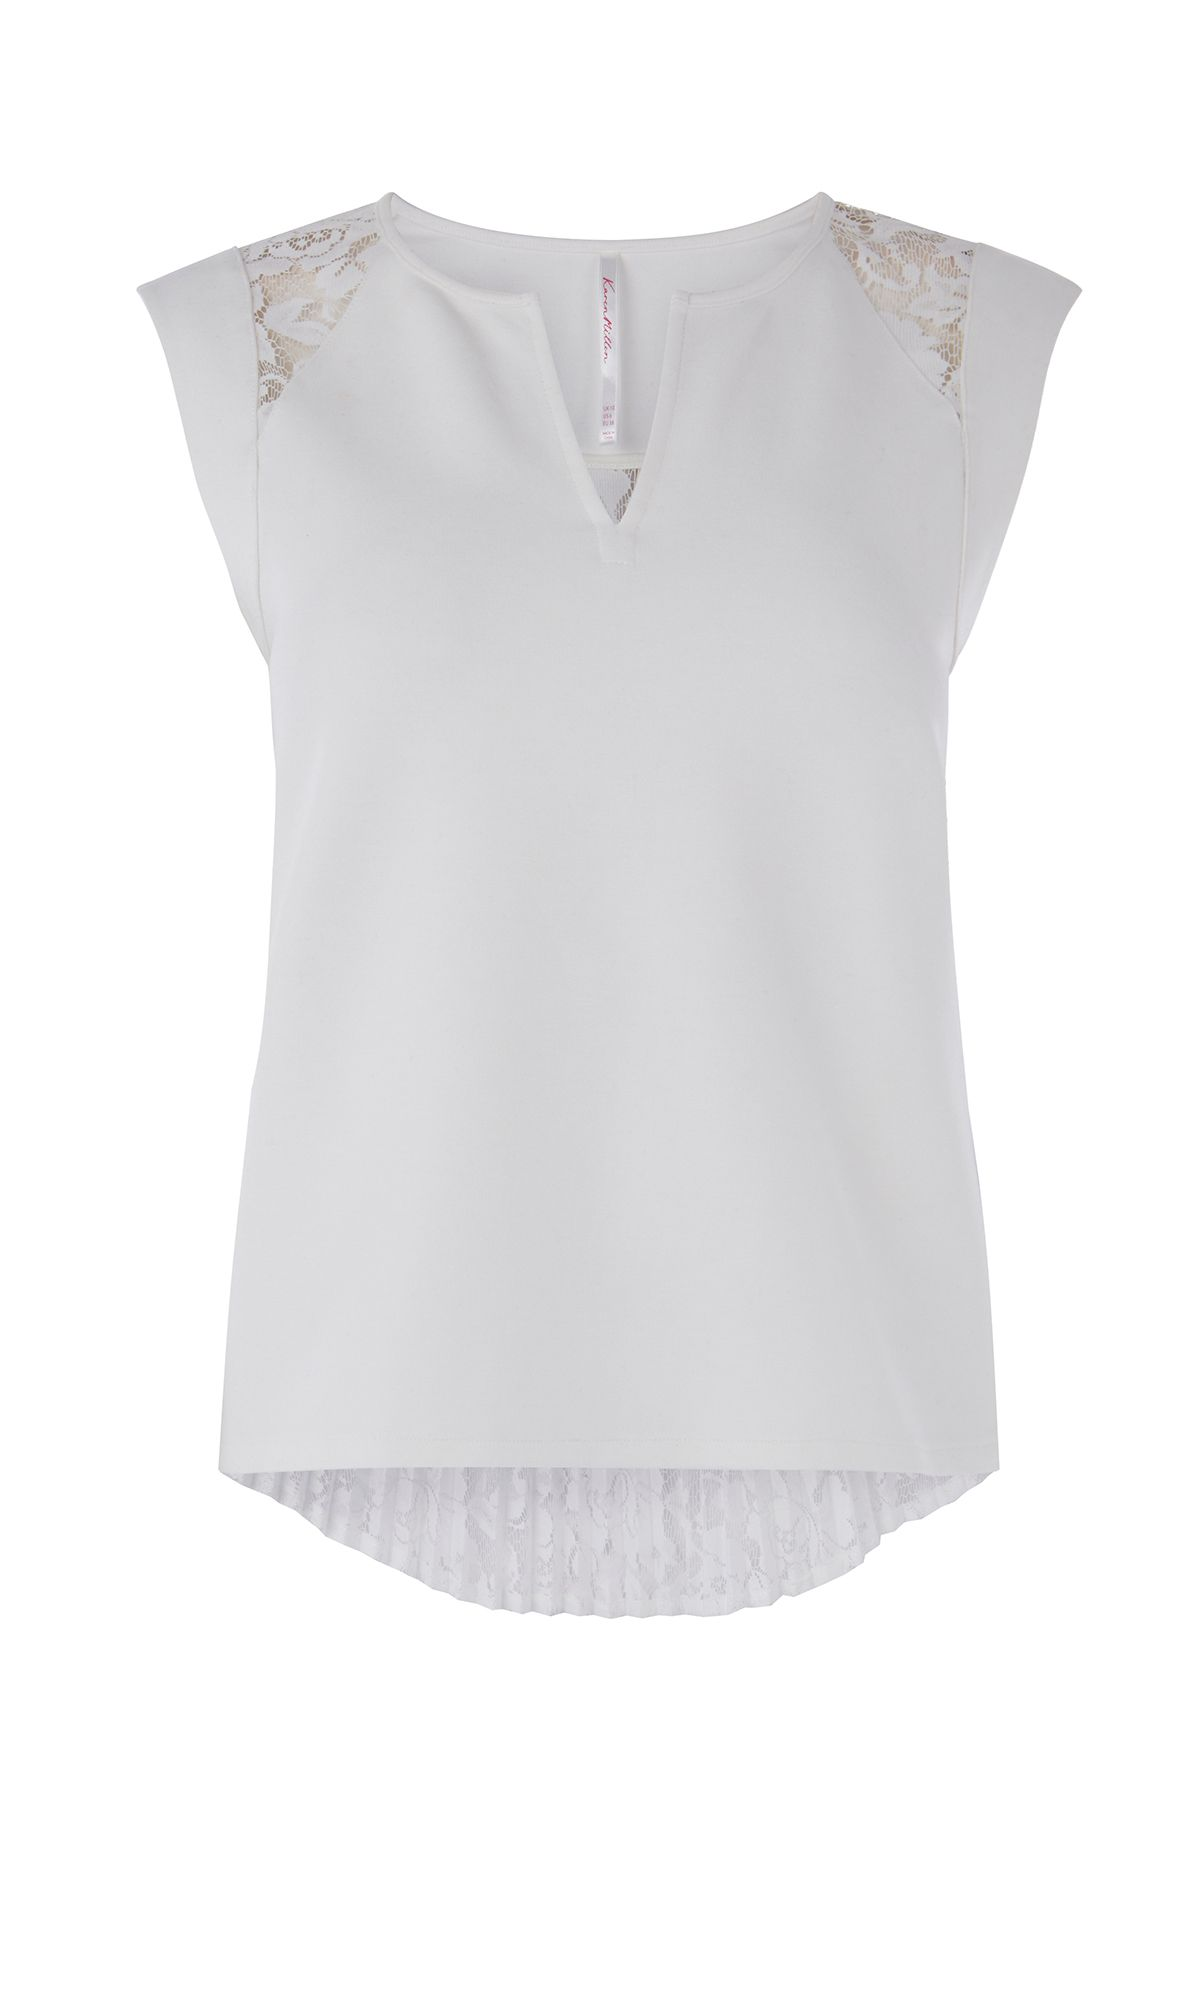 Karen Millen Lace Back Jersey Top, White